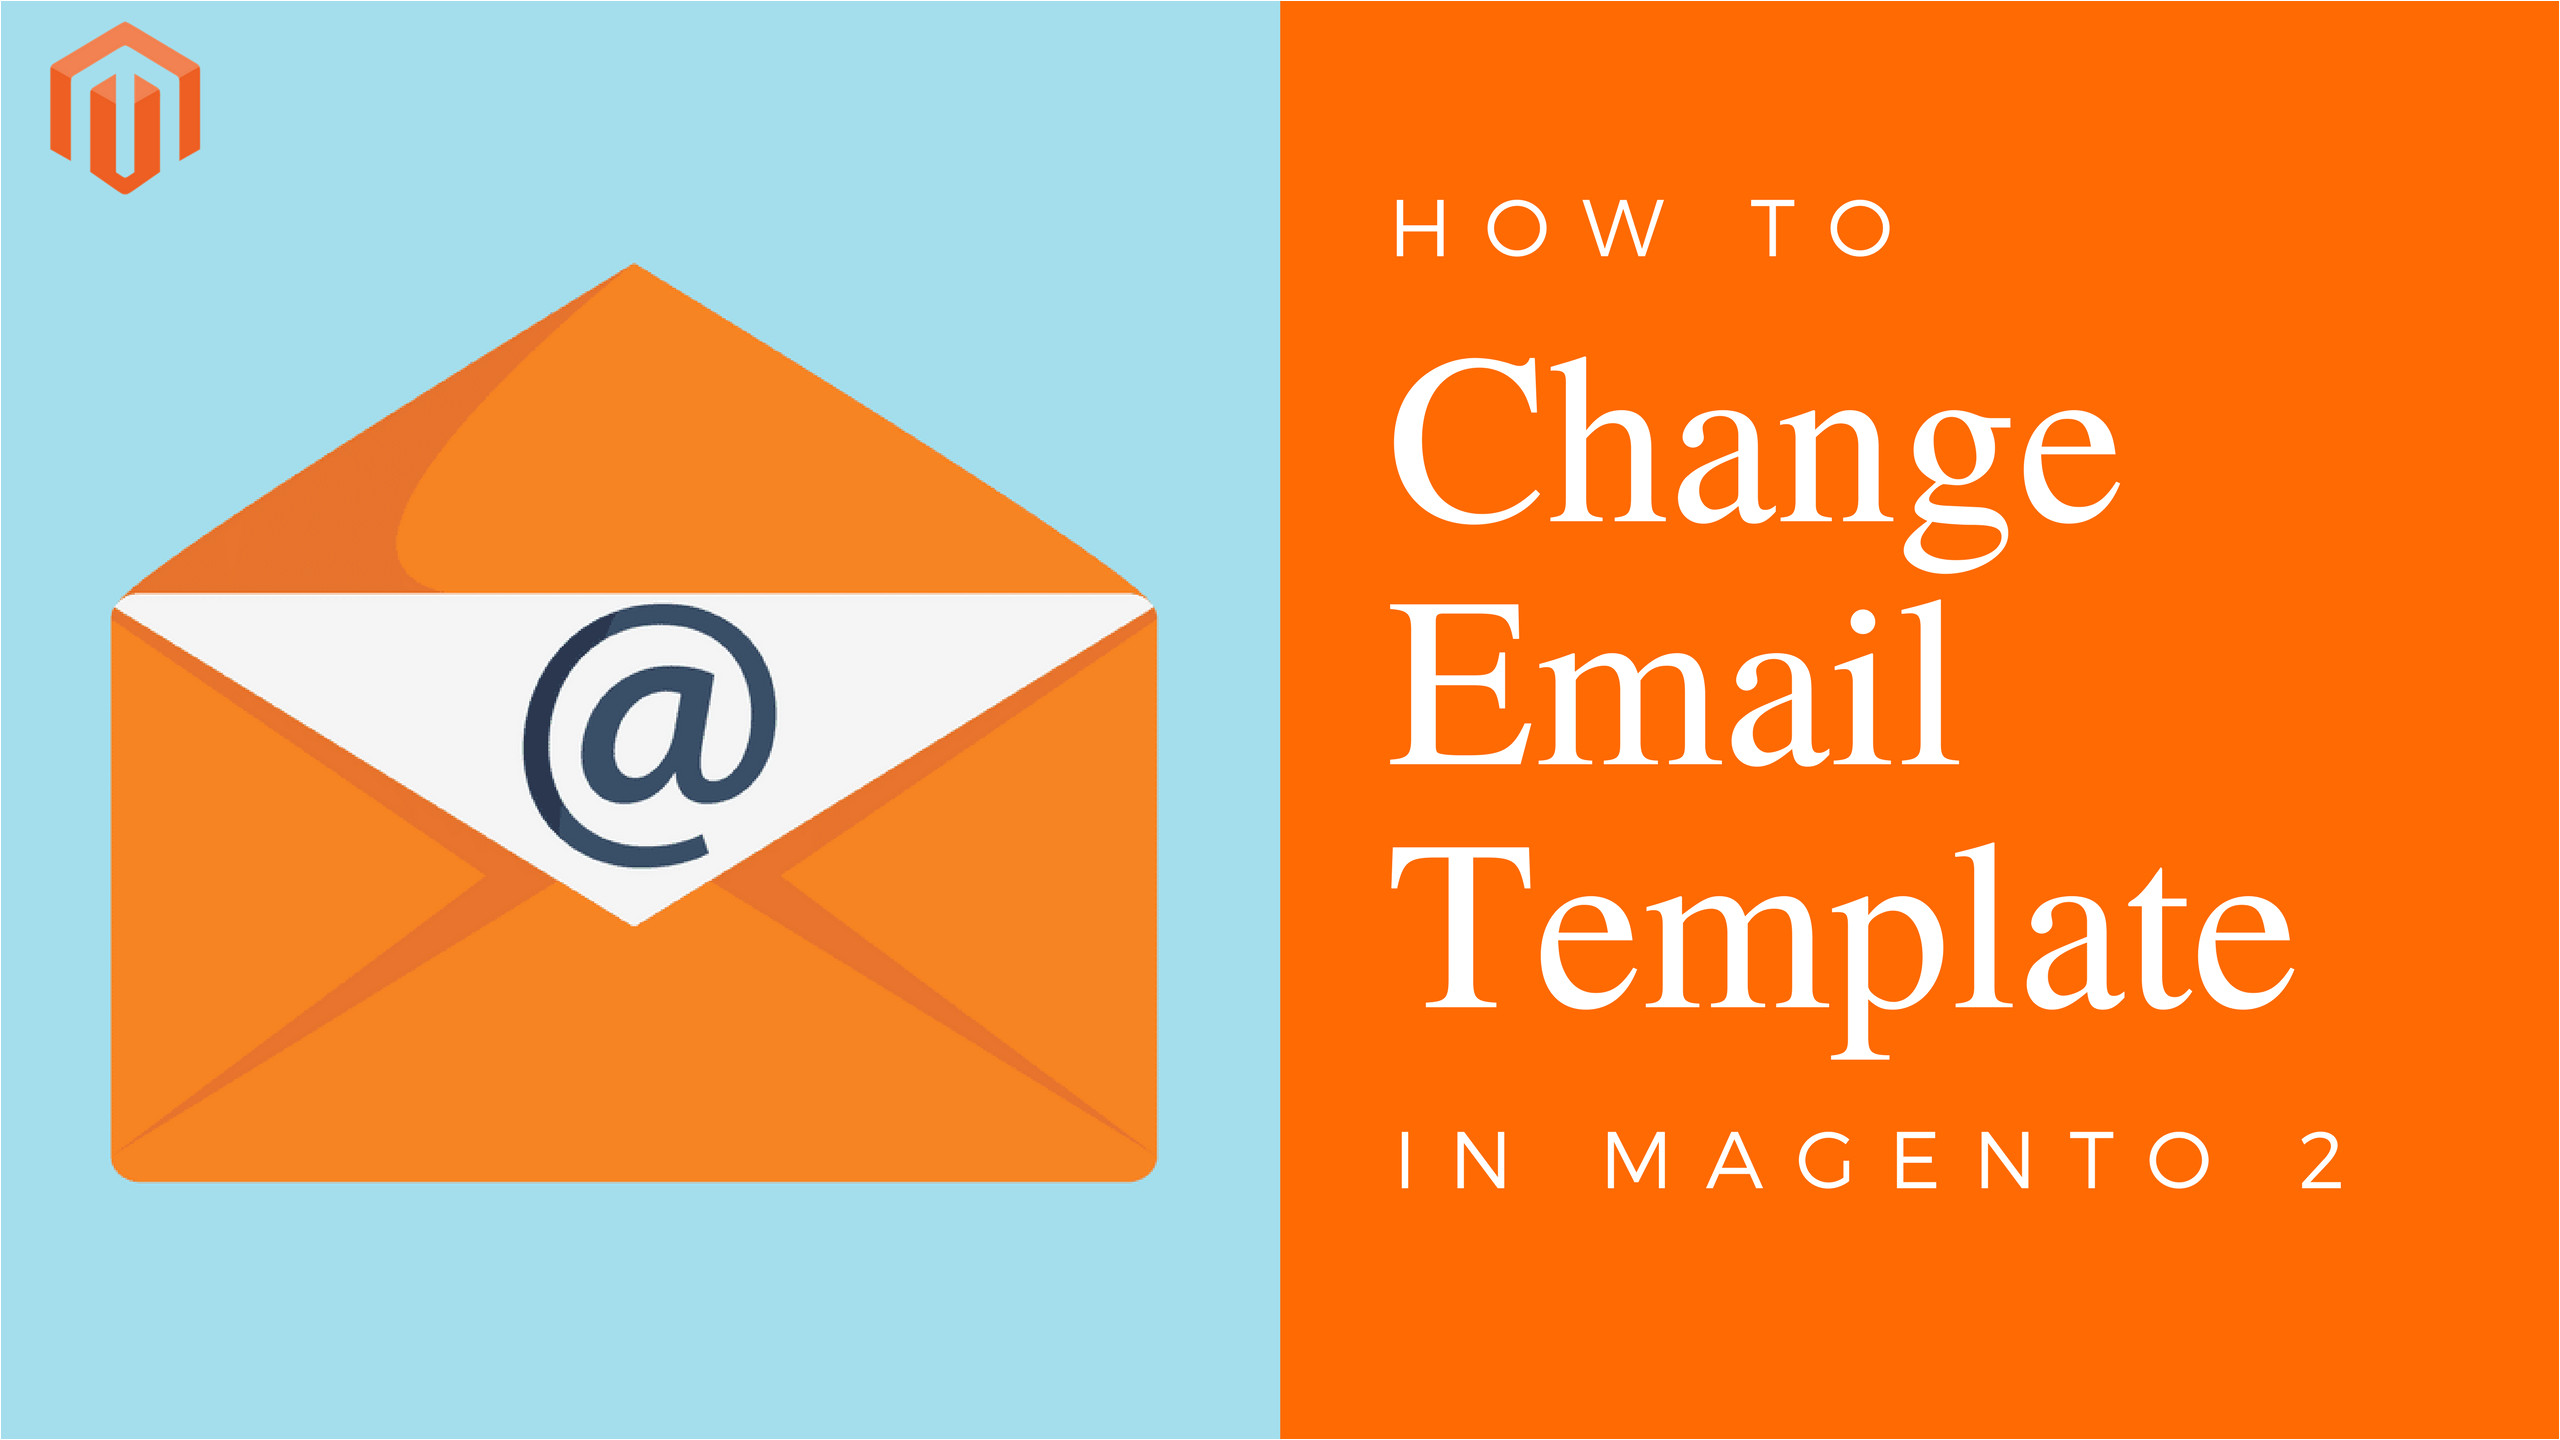 how to change email template in magento